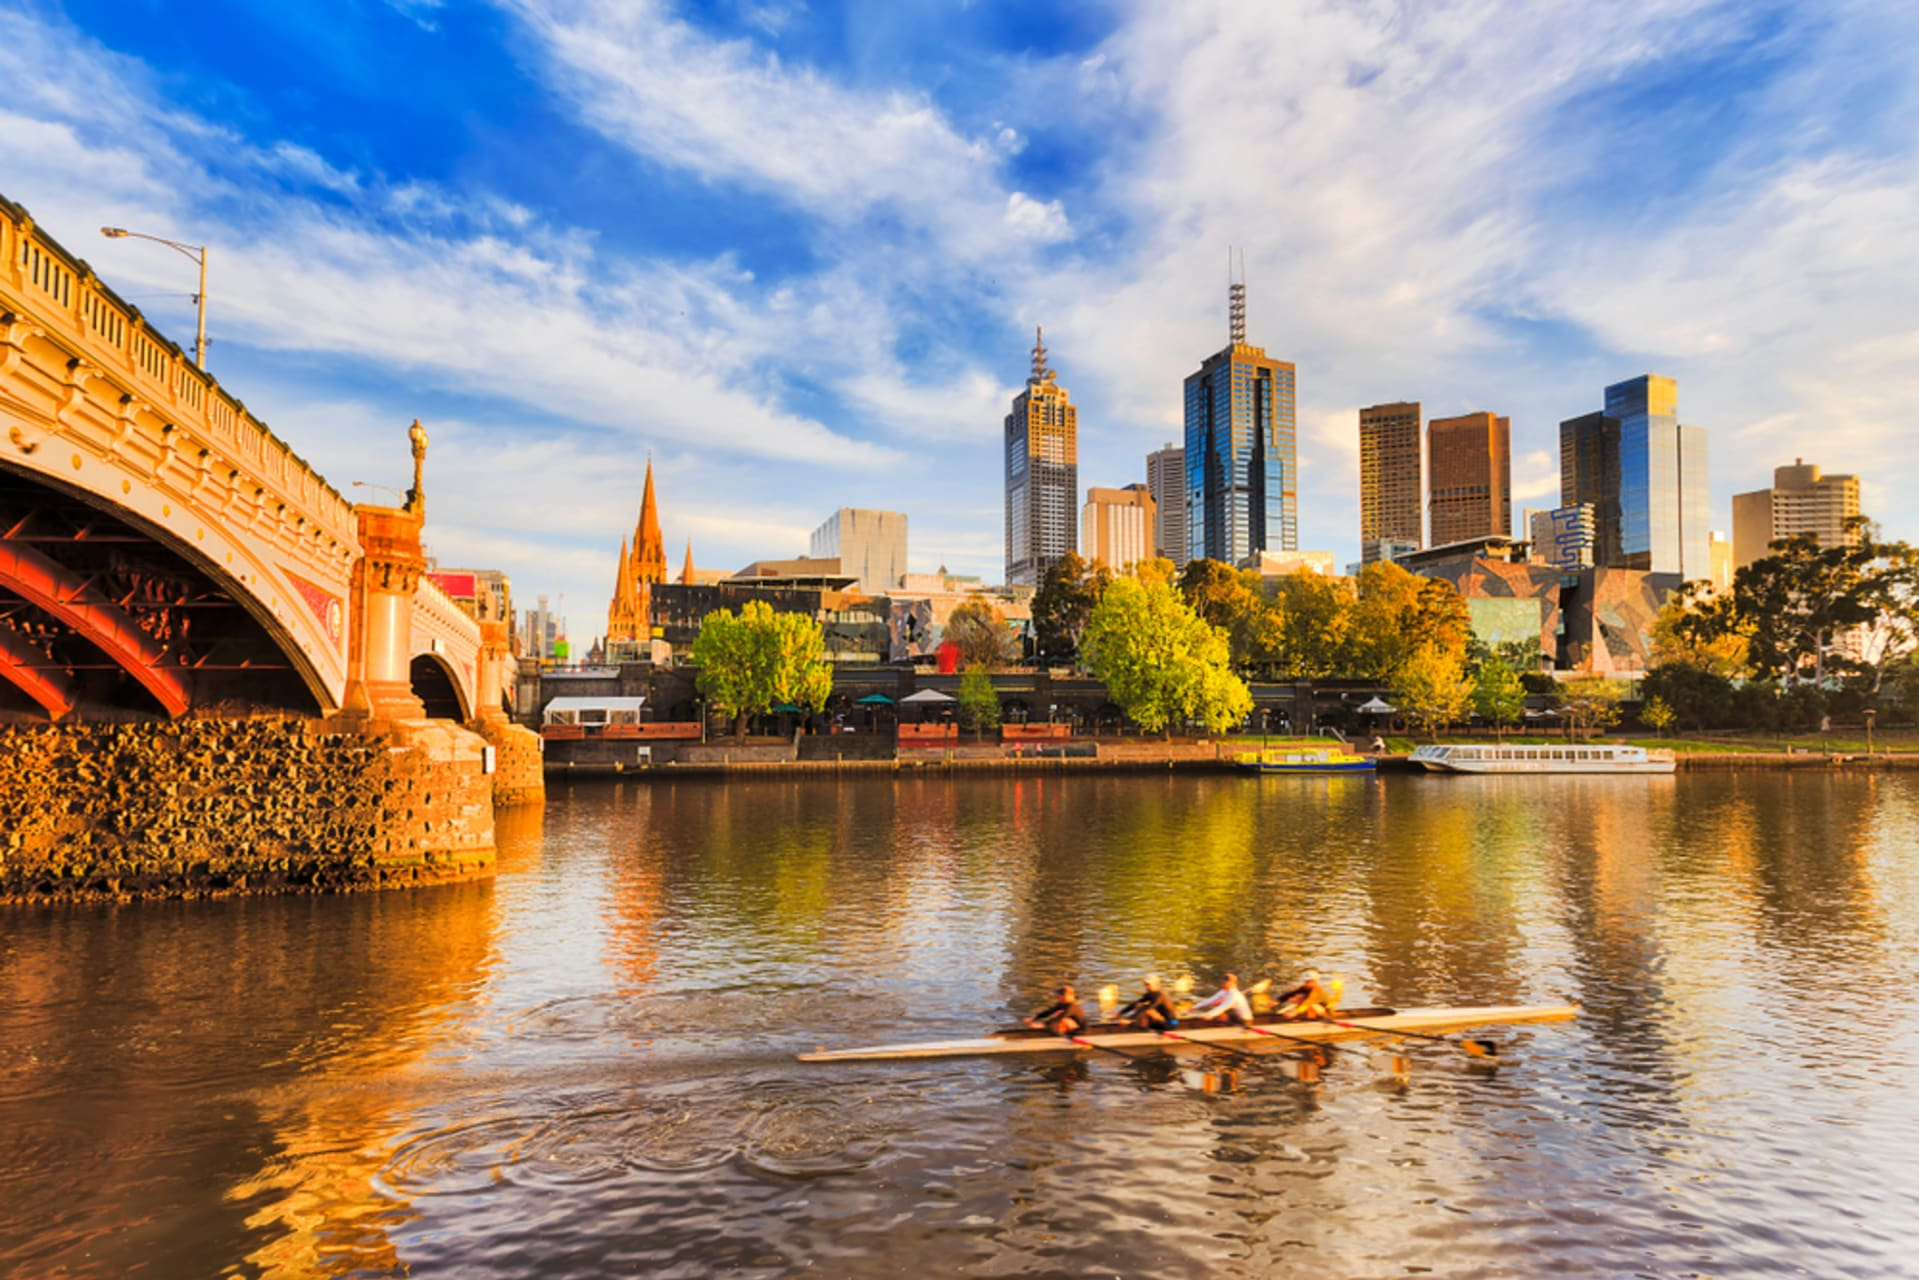 Melbourne - Fall in Love With Melbourne: Australia's City of Romance